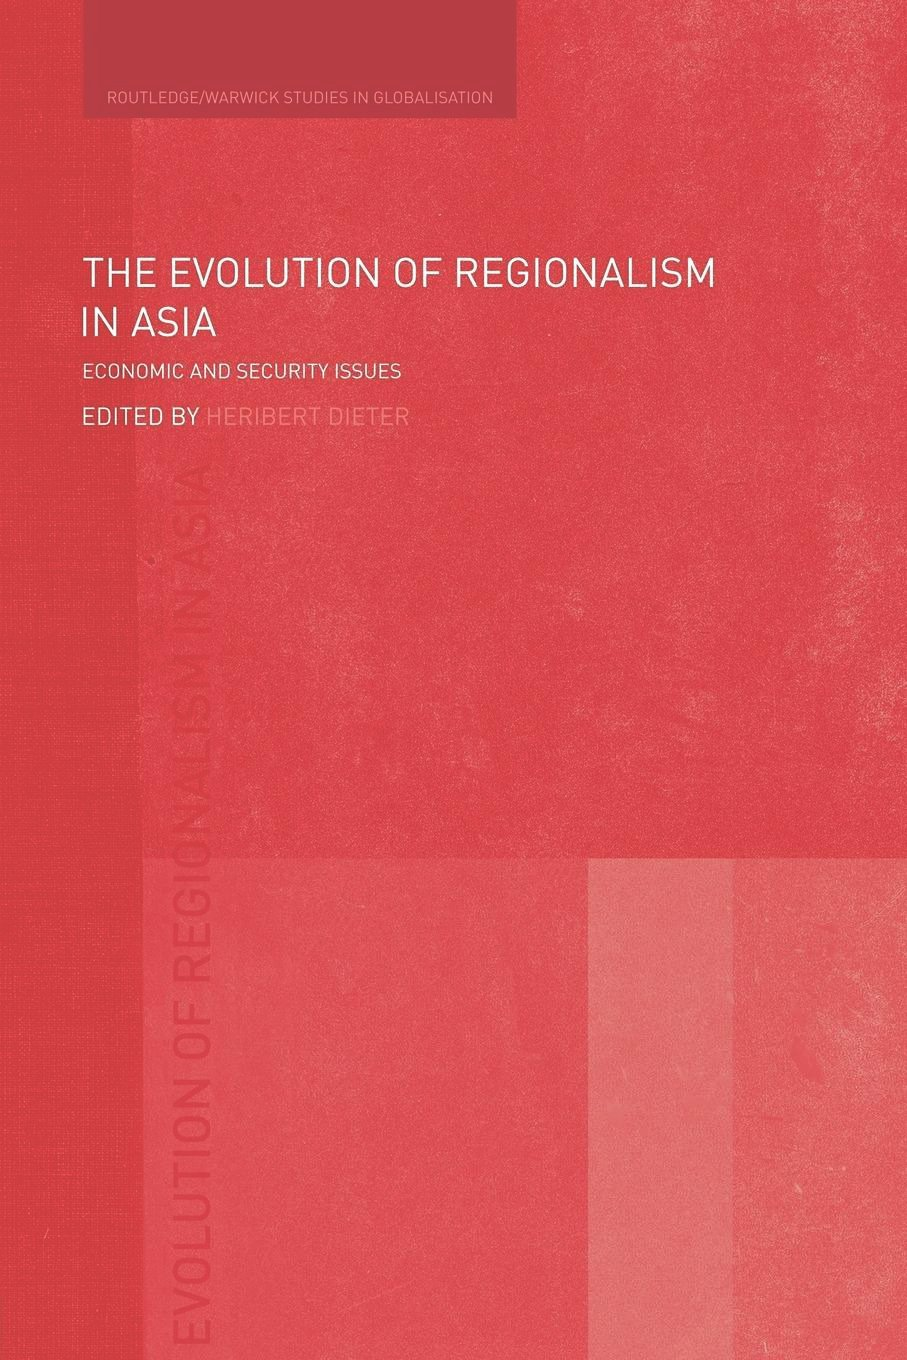 The Evolution of Regionalism in Asia